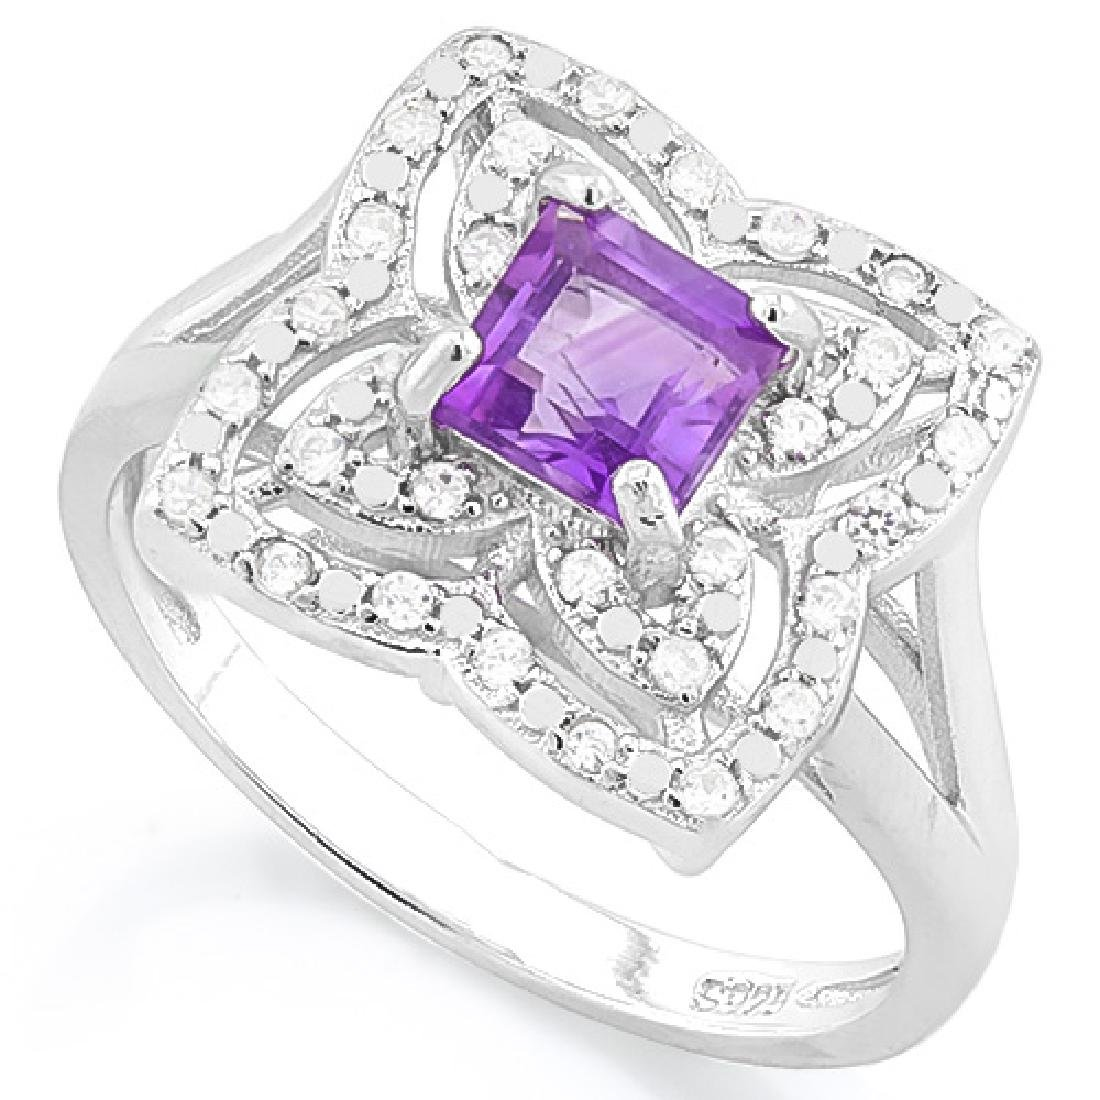 3/5 CARAT AMETHYST & (32 PCS) FLAWLESS CREATED DIAMOND